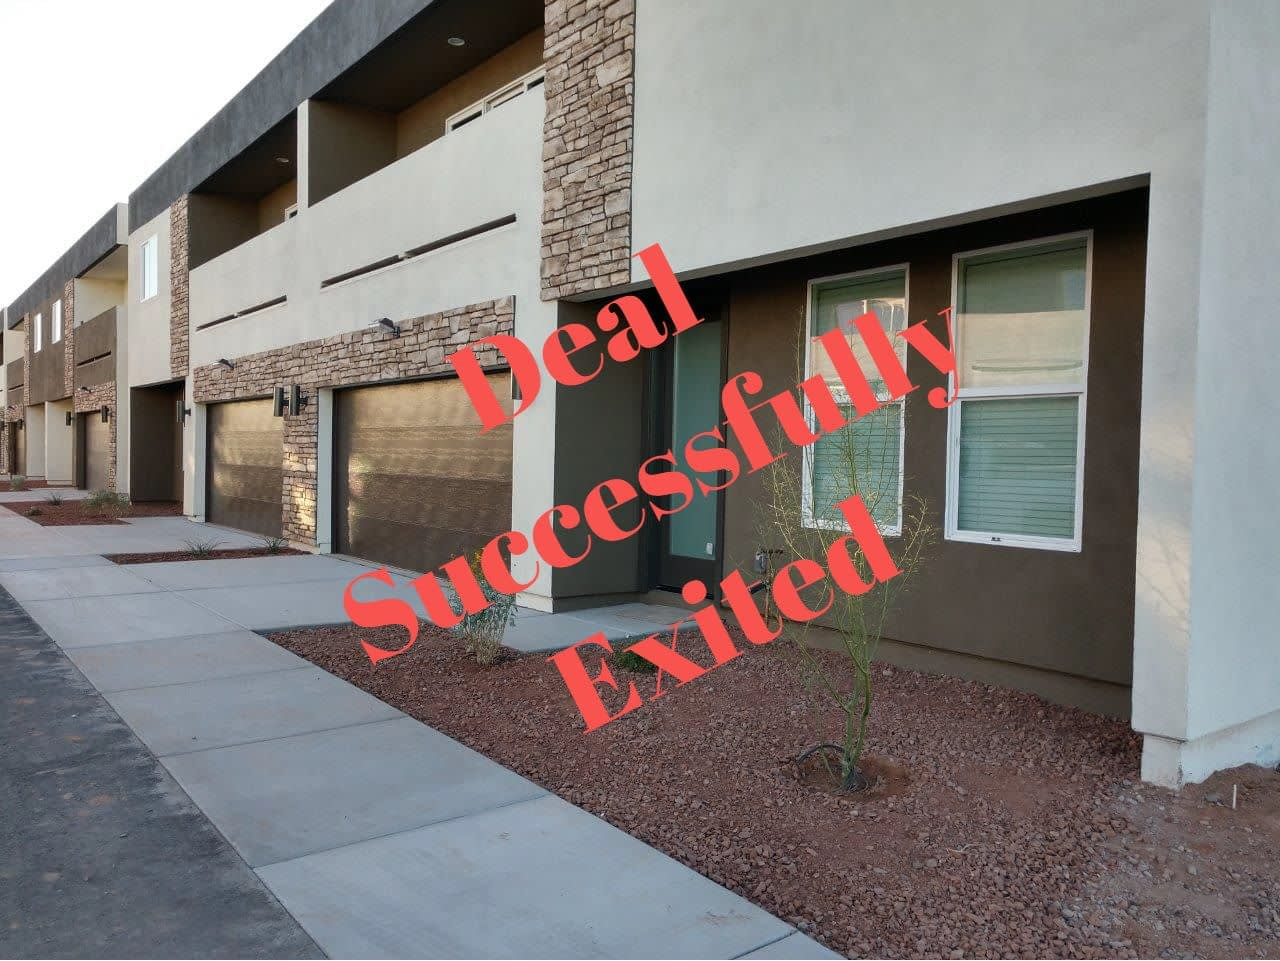 Construction of 42 Build for Rent Homes in Phoenix, AZ – fully funded